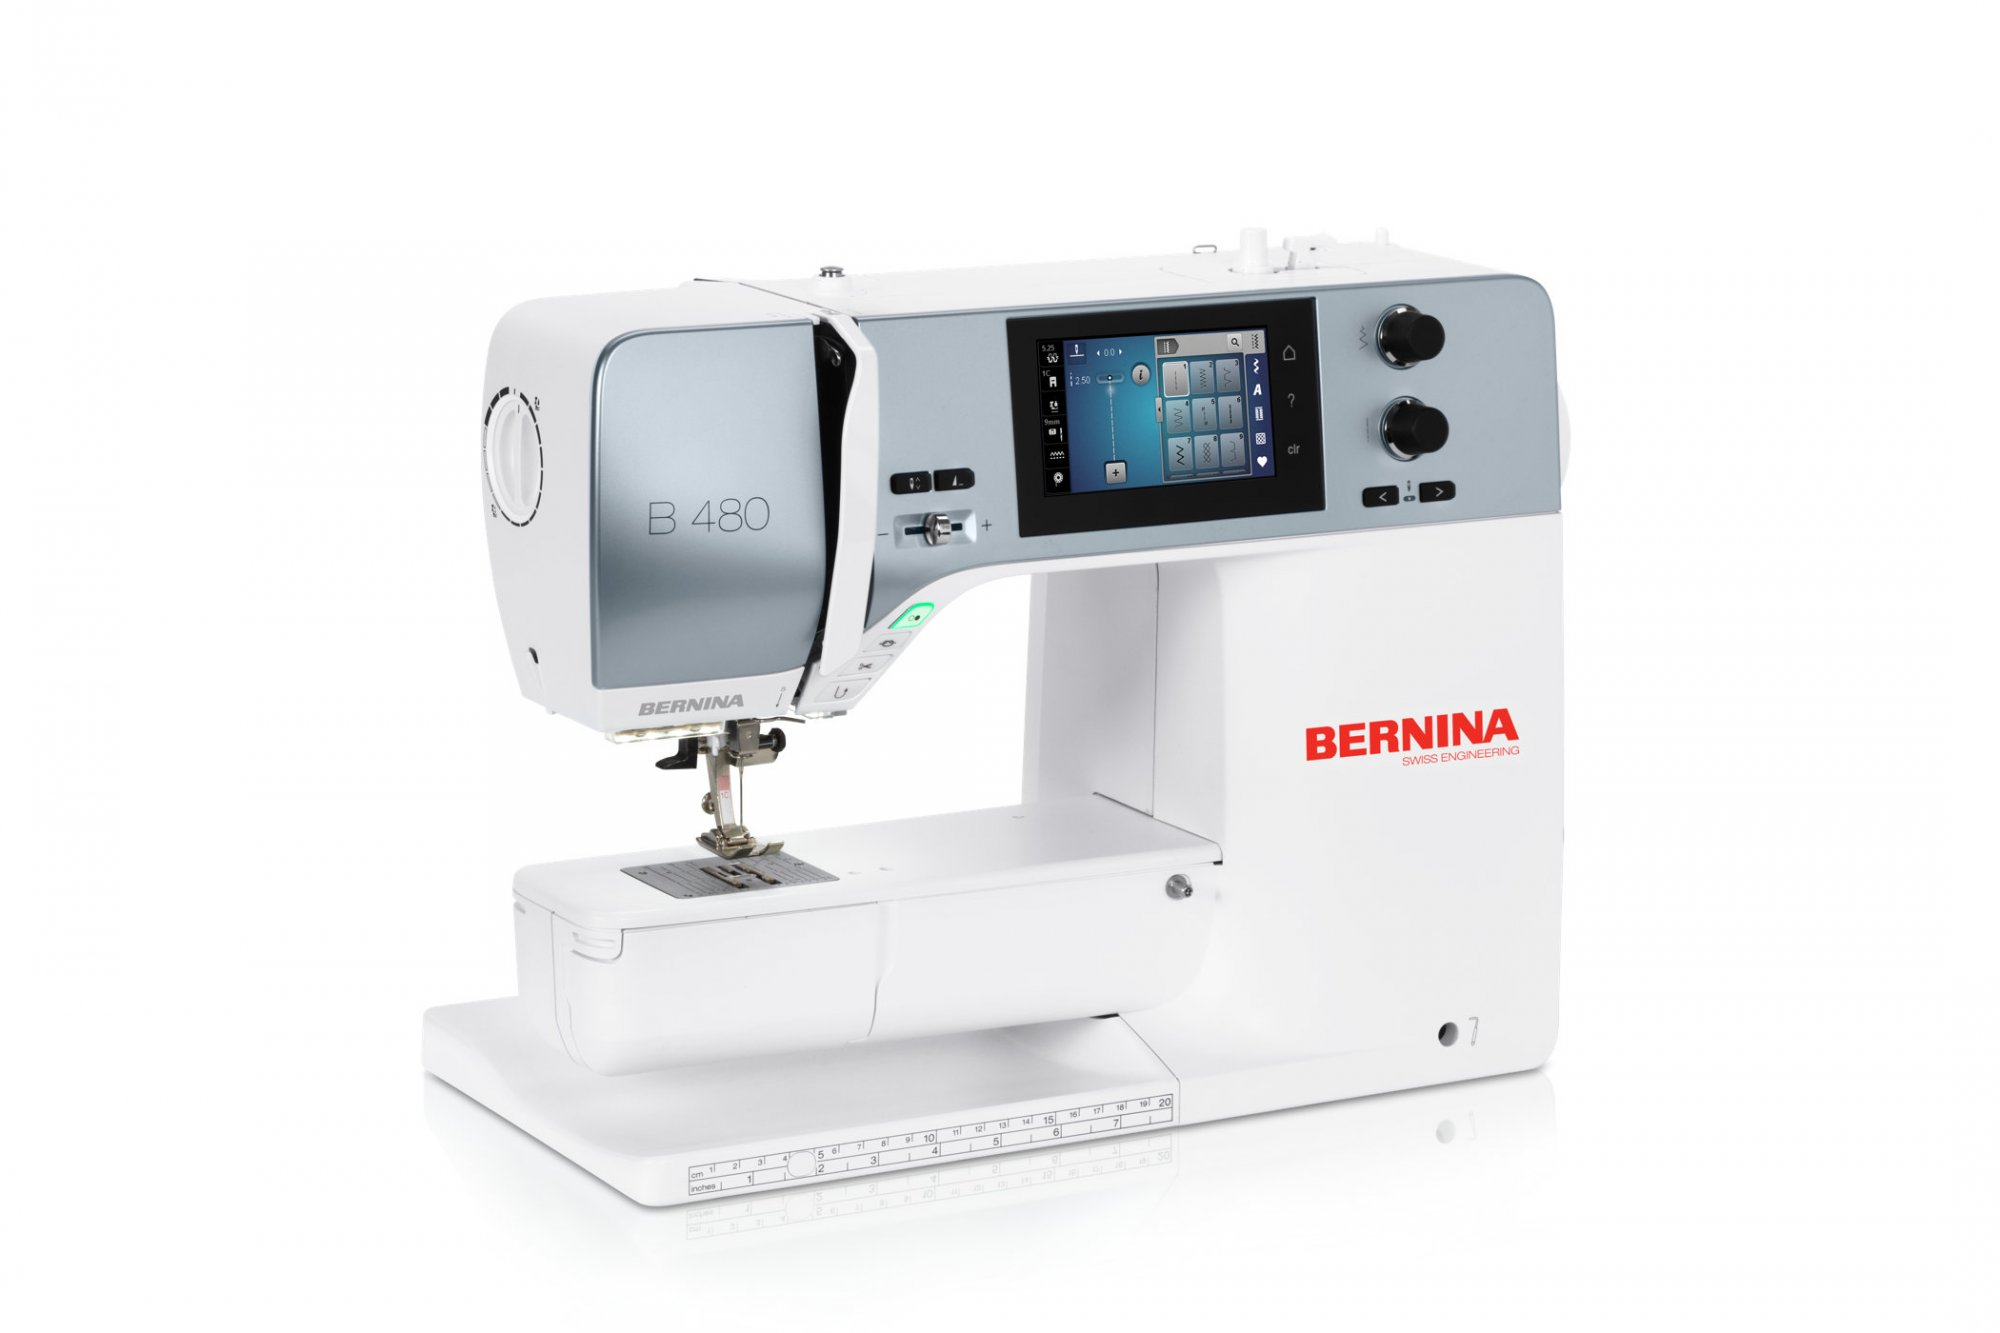 Bernina B480 Sewing Machine